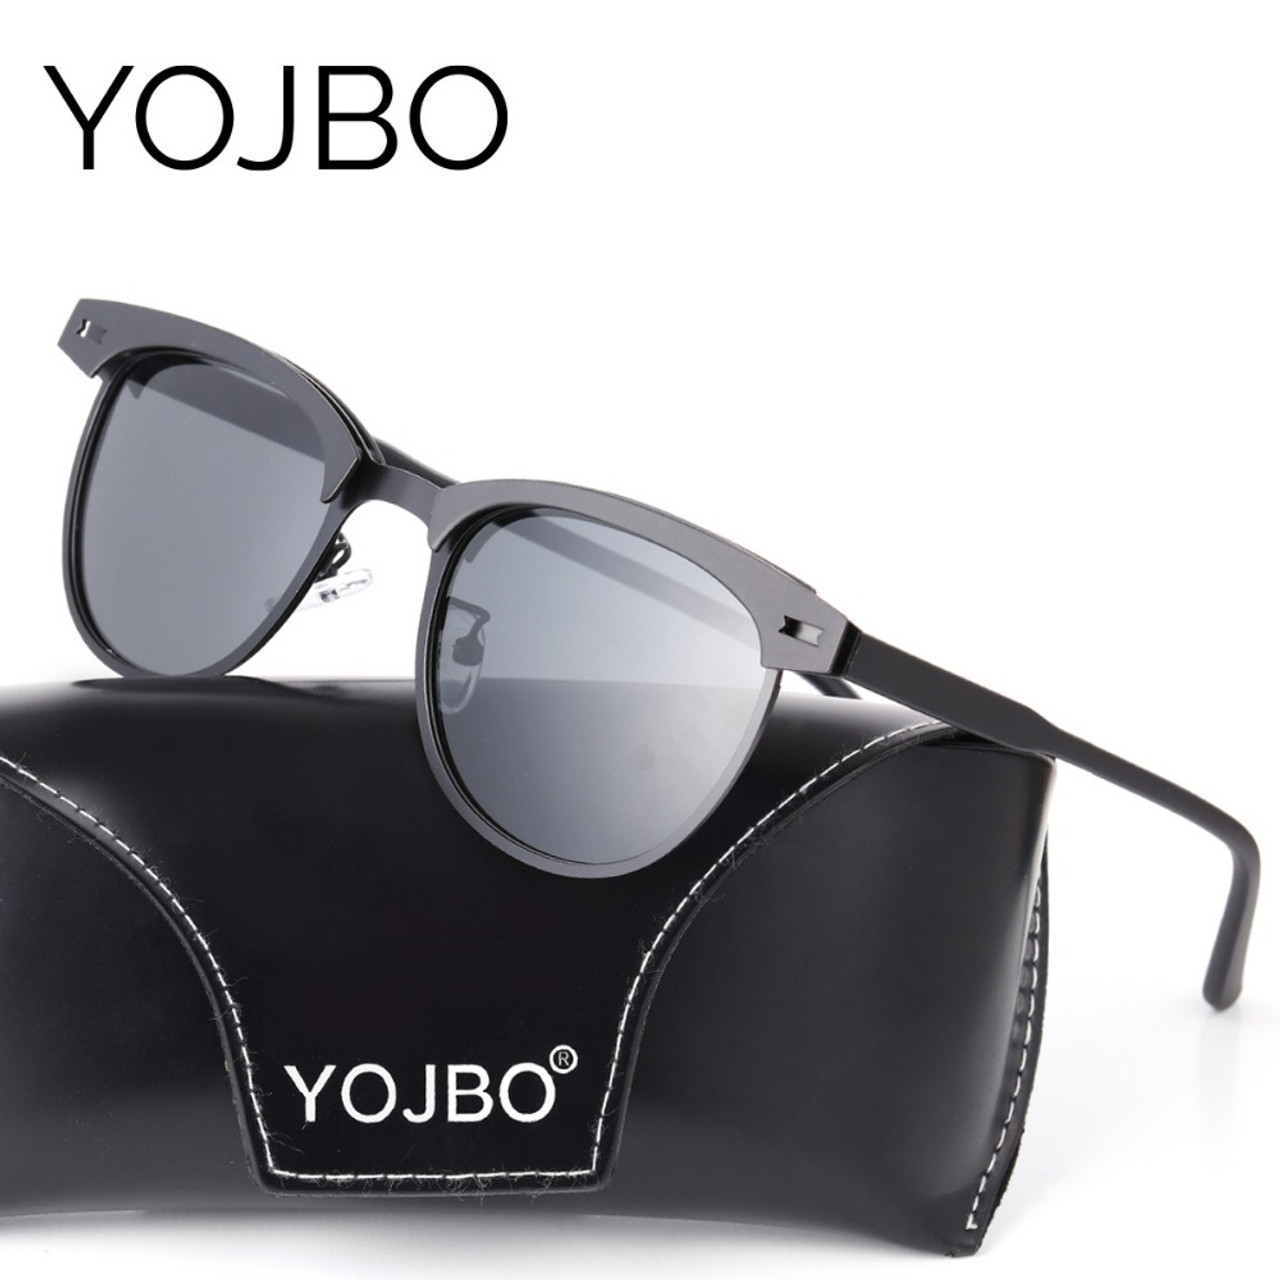 6337aae8ffa ... YOJBO Aviator Sunglasses Men Polarized 2018 Male Ladies Retro Mirror  Women Vintage Shades Luxury Brand Designe ...